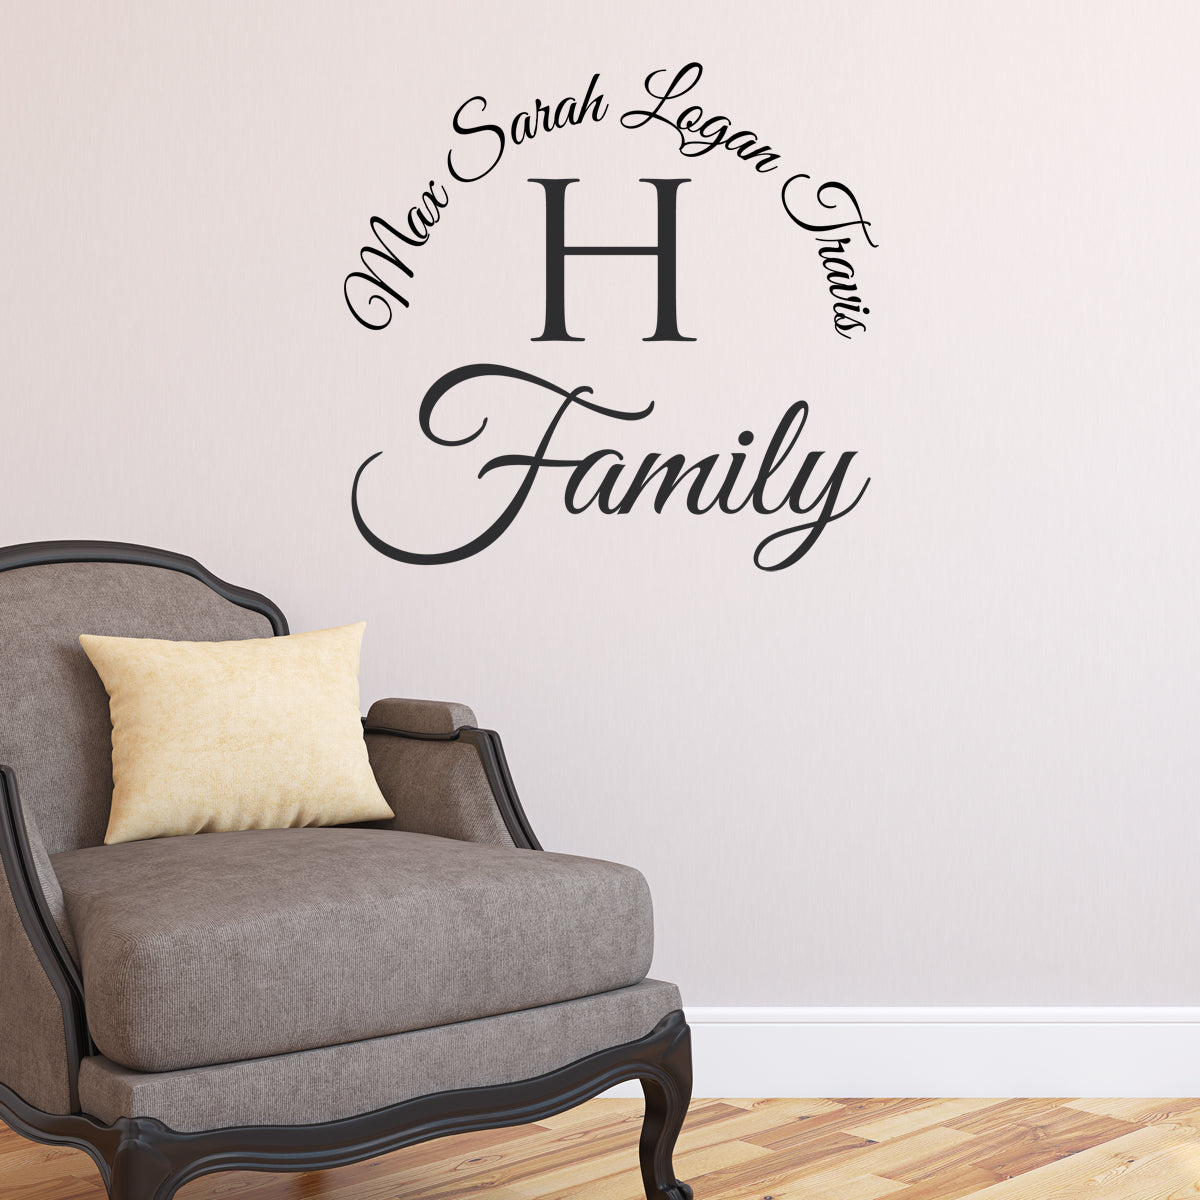 Family Monogram Wall Decals Alphabet Garden Decals - Family monogram wall decals